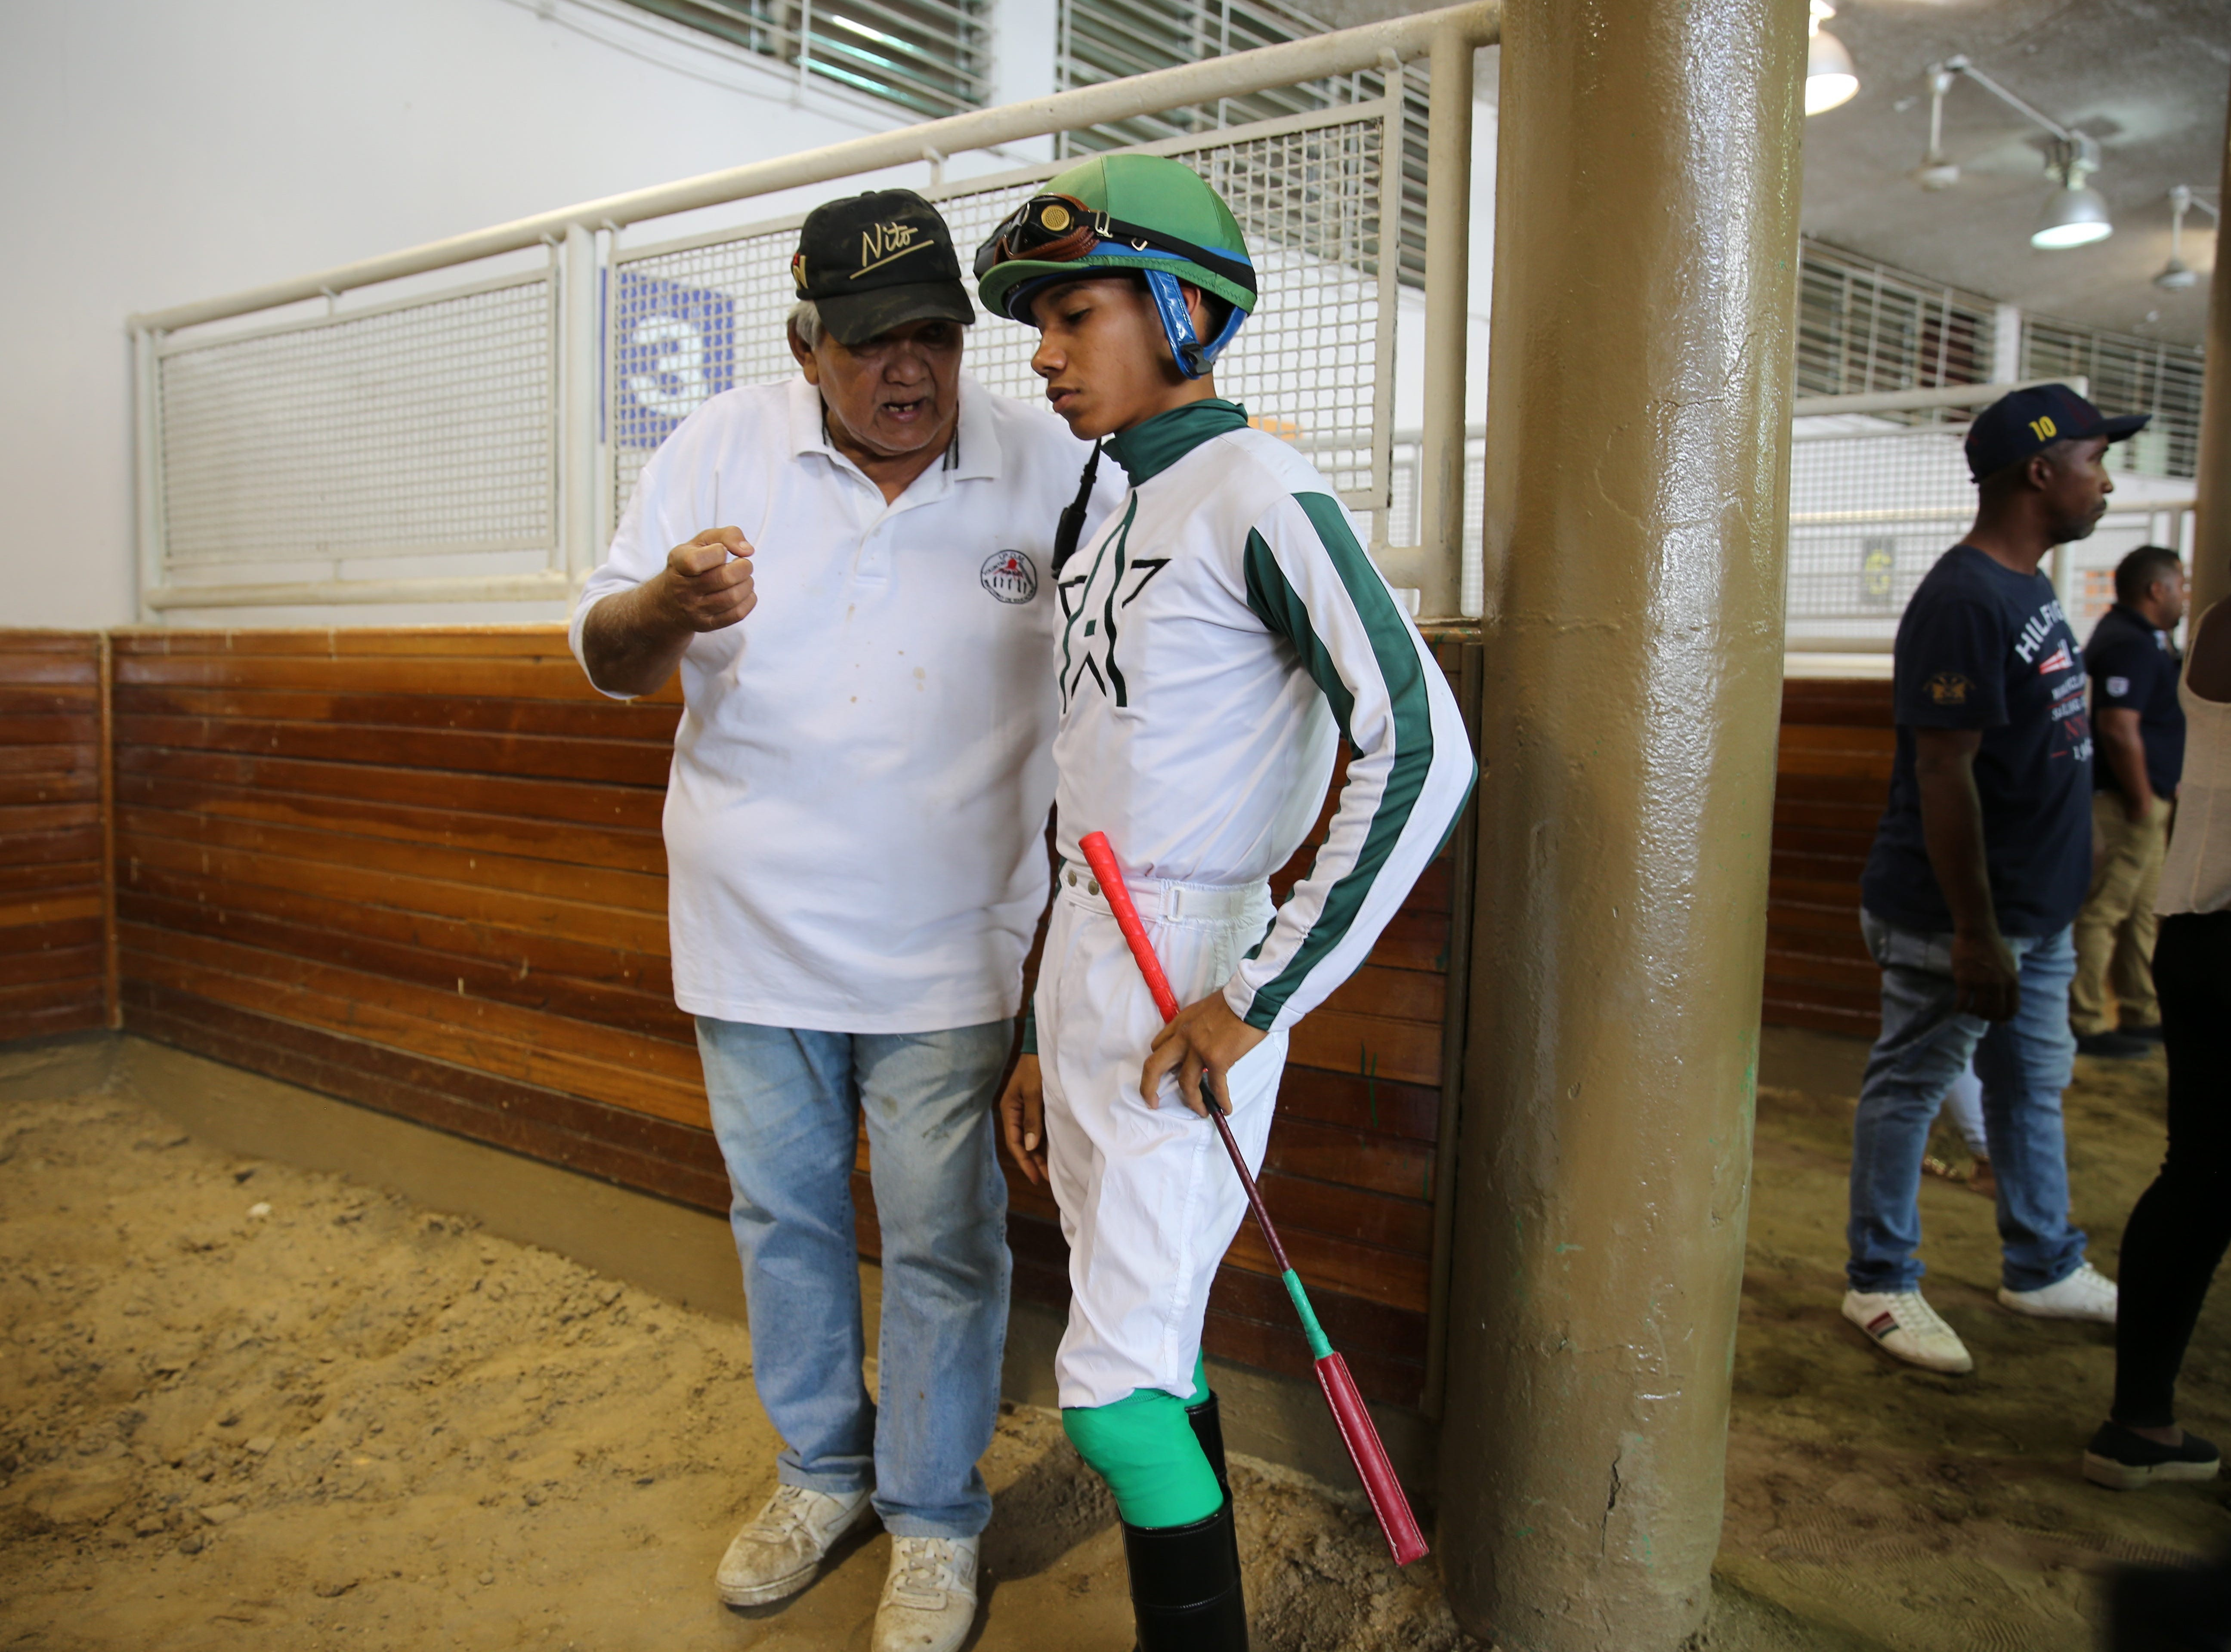 Juan Jimenez, 22, graduated two years ago from Panama's jockey school and is still racing in Panama in hopes of moving to the U.S.